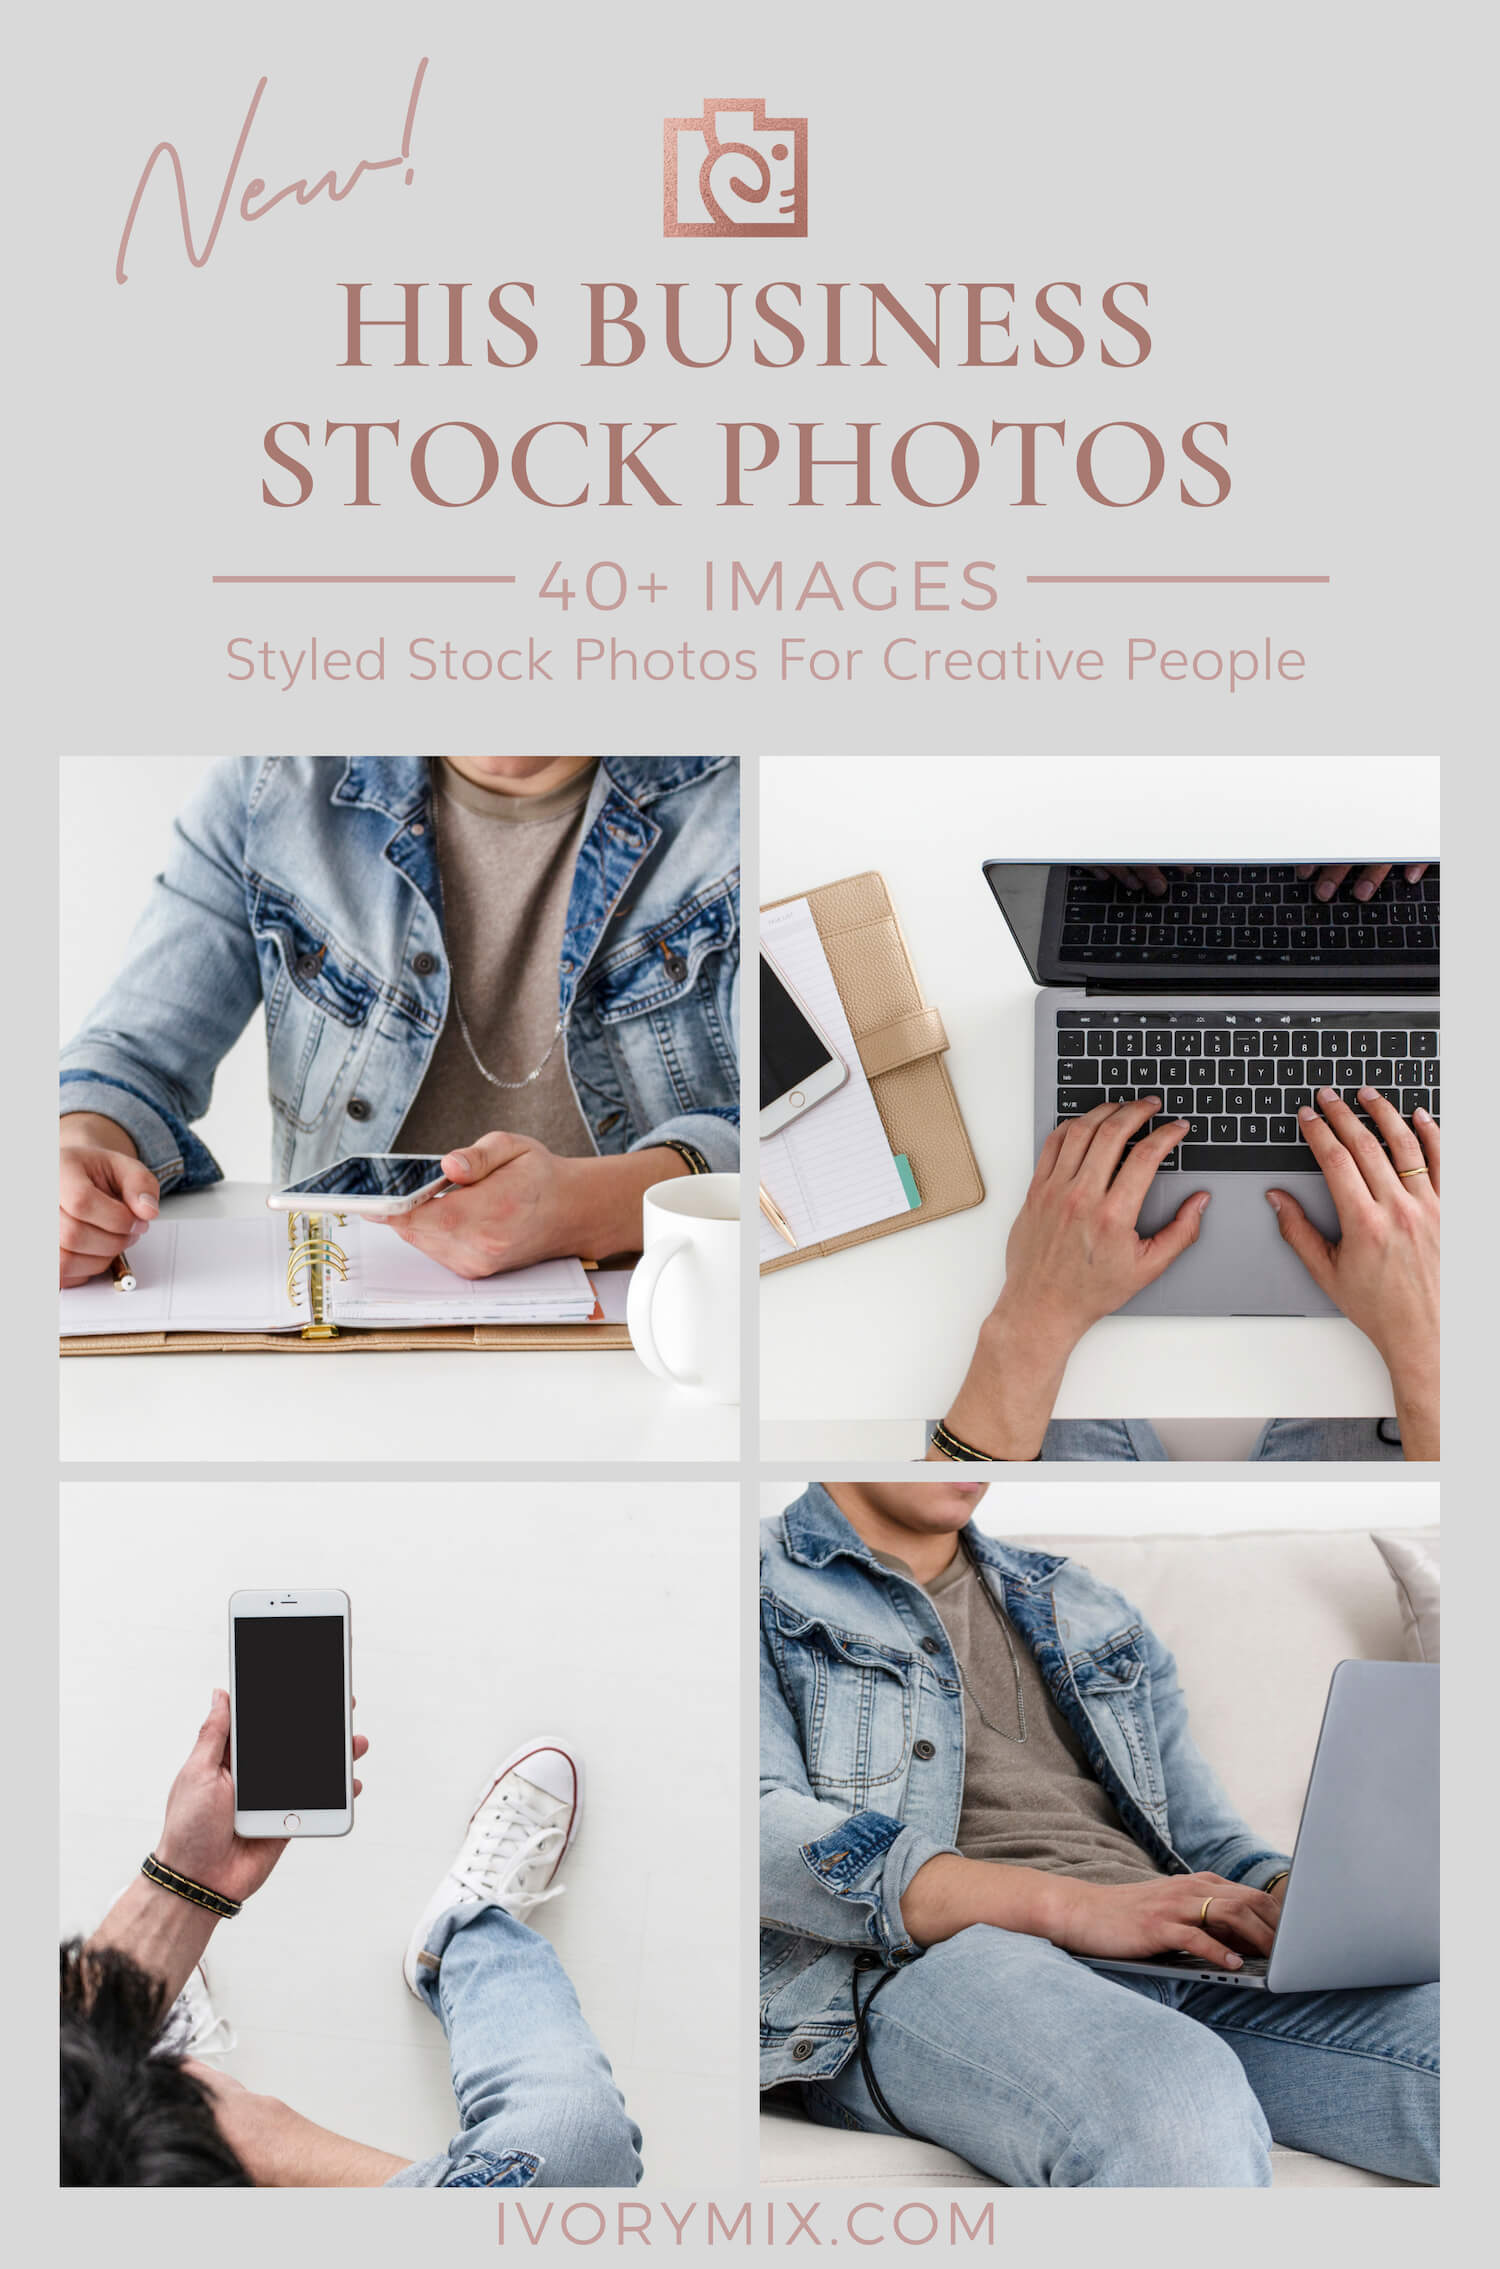 His Business Styled Stock Photos for Men Entrepreneurs and Biz Owners